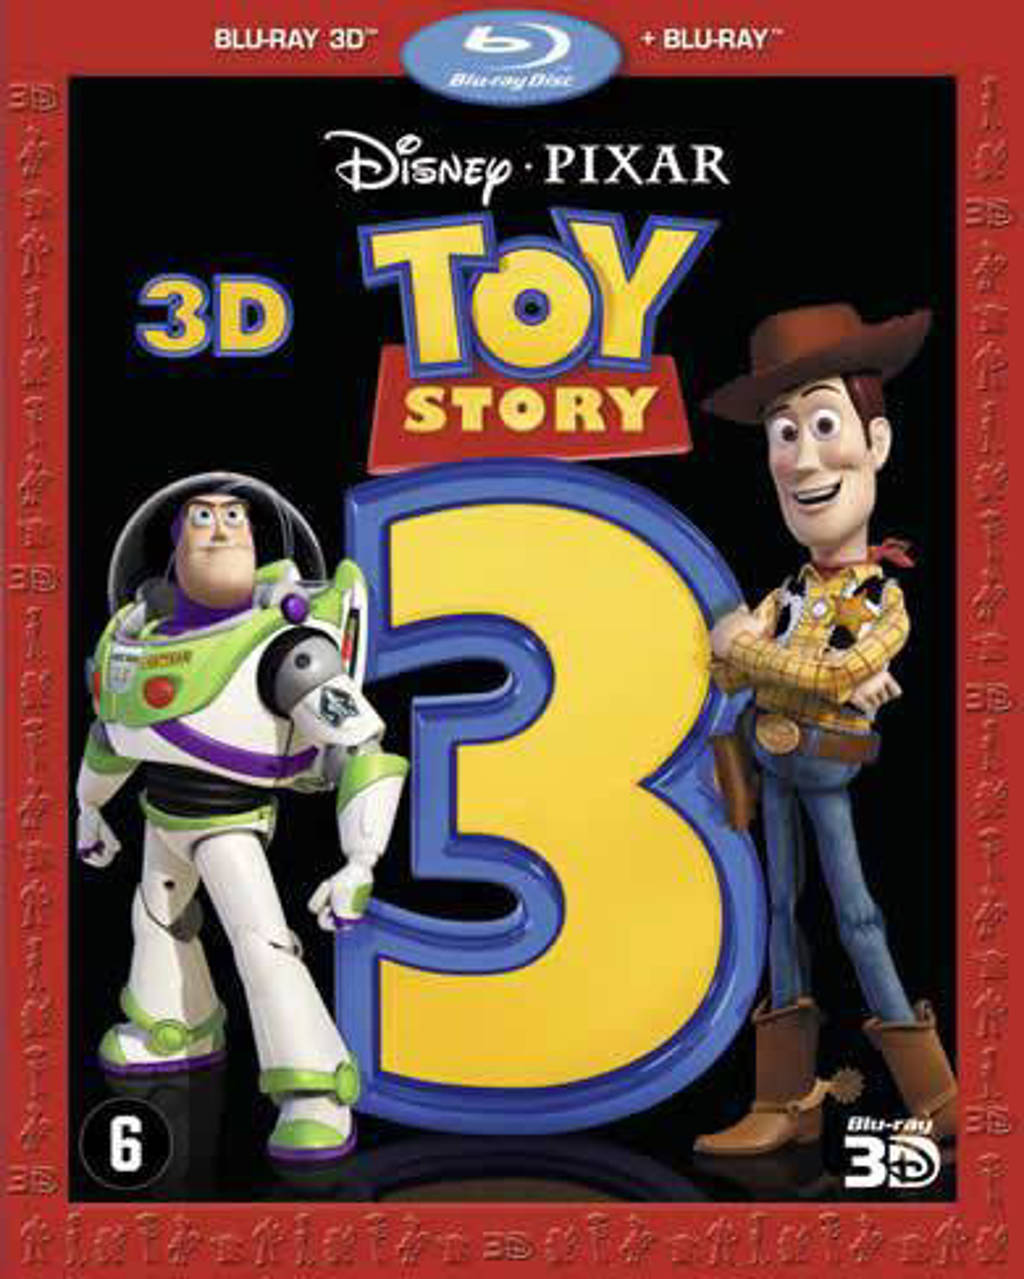 Toy story 3 (3D+2D) (Blu-ray)